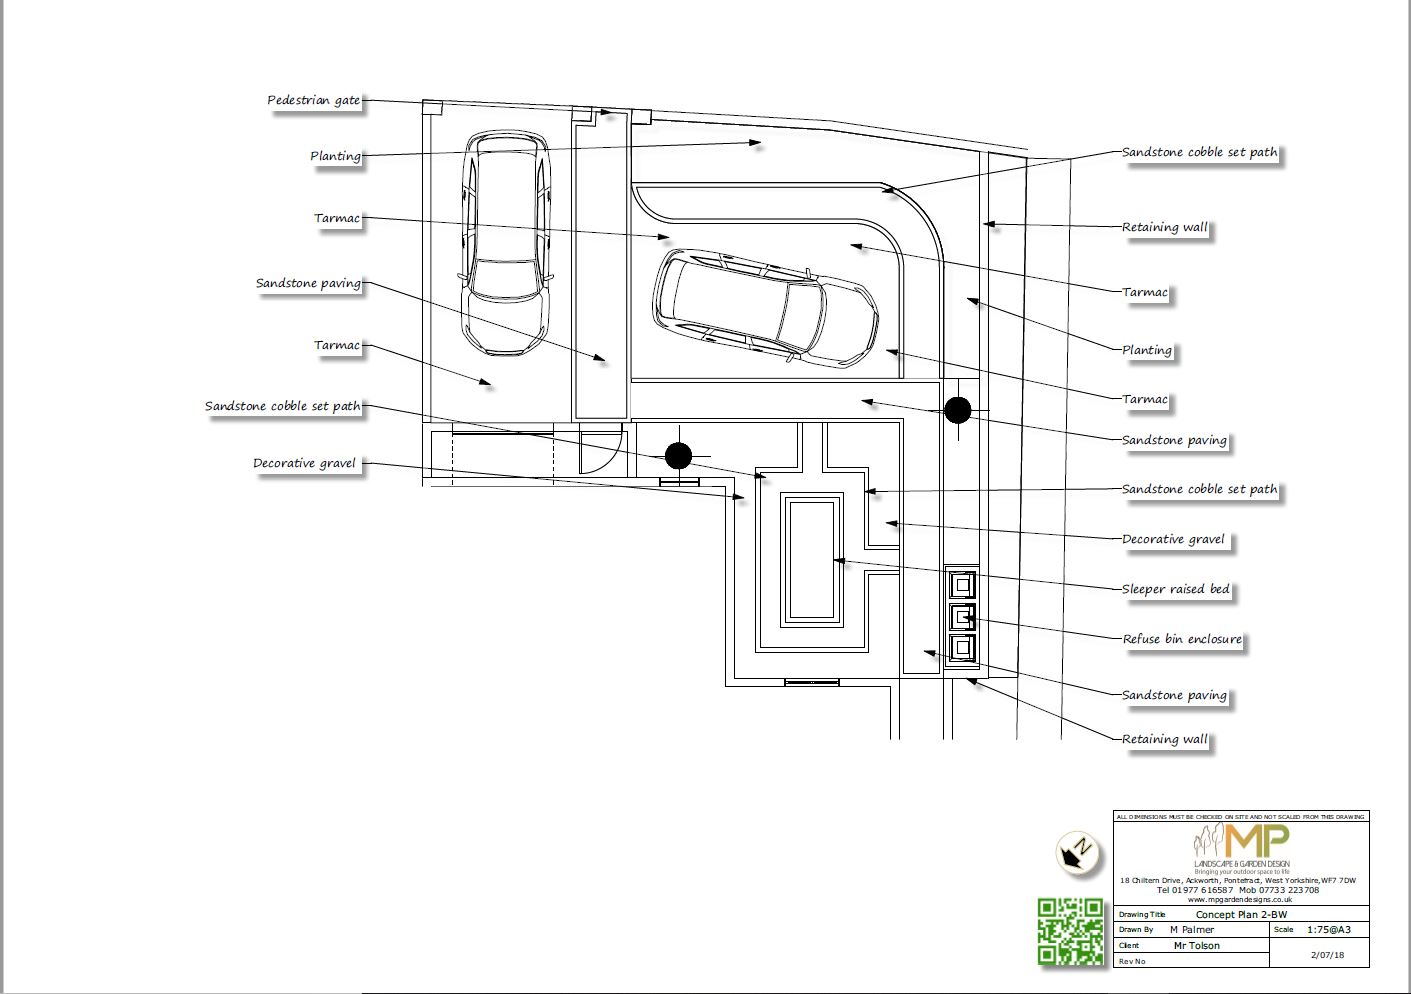 Front garden design concept plan-2 black and white for a property in Kippax.